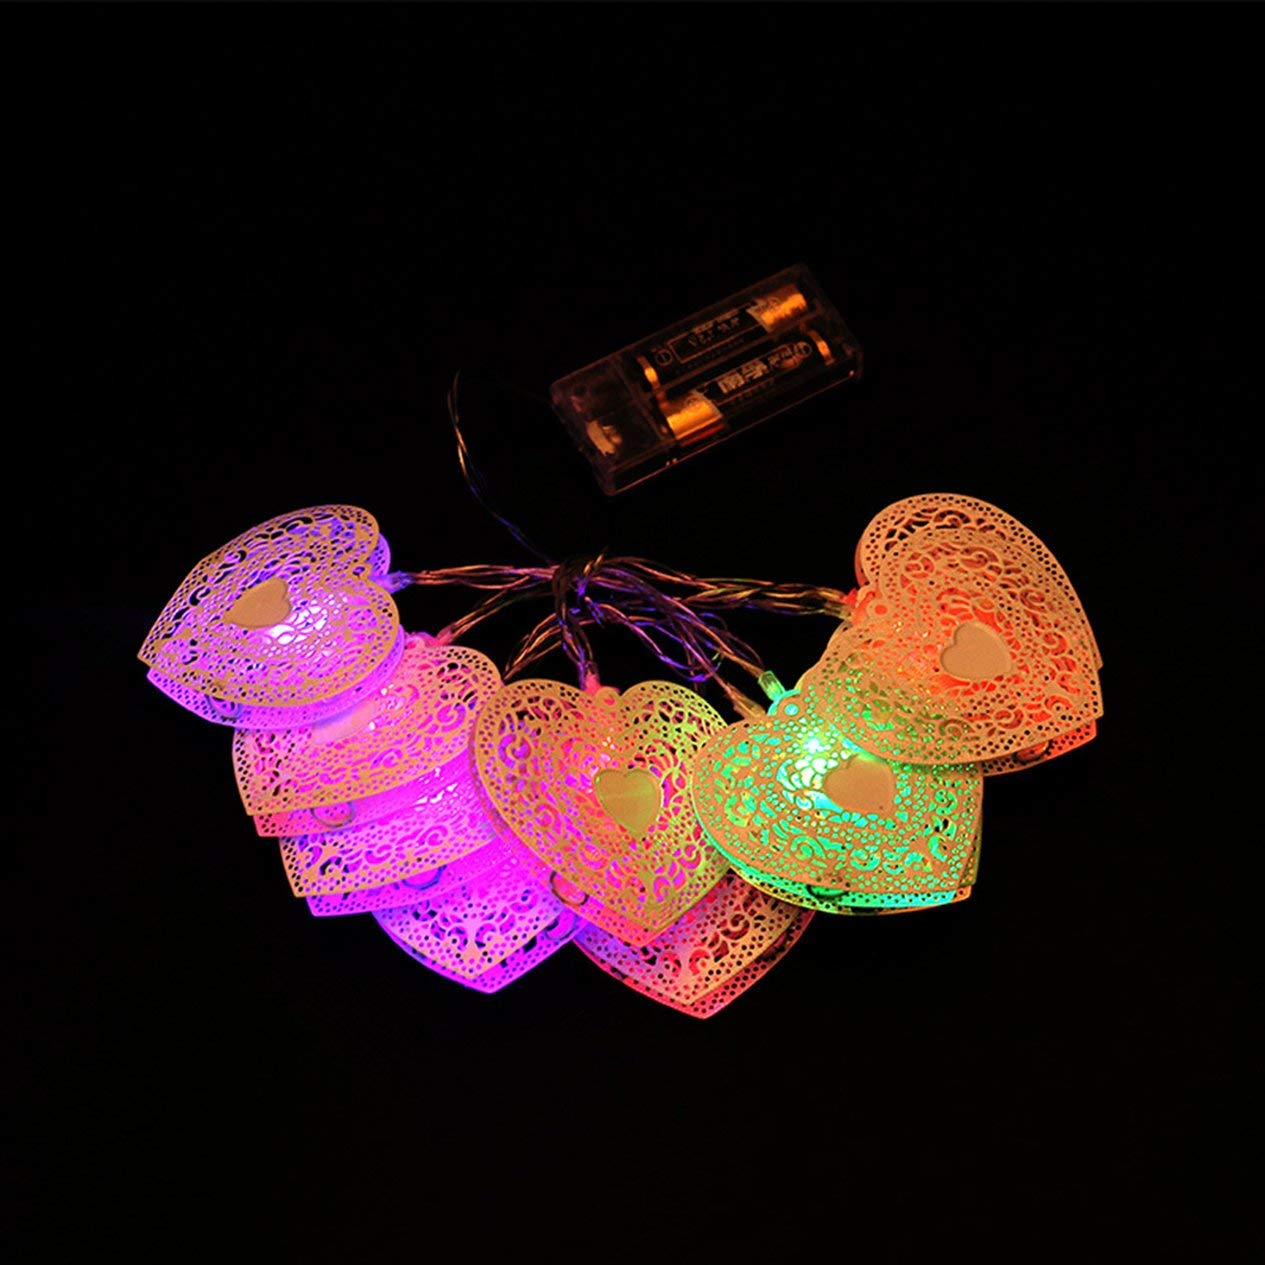 Ironheel Fairy String,1.2m 10LEDs Hollow Heart Shaped Fairy String Decorative Lights Battery Operated Wedding Christmas Outdoor Patio Garland Decor